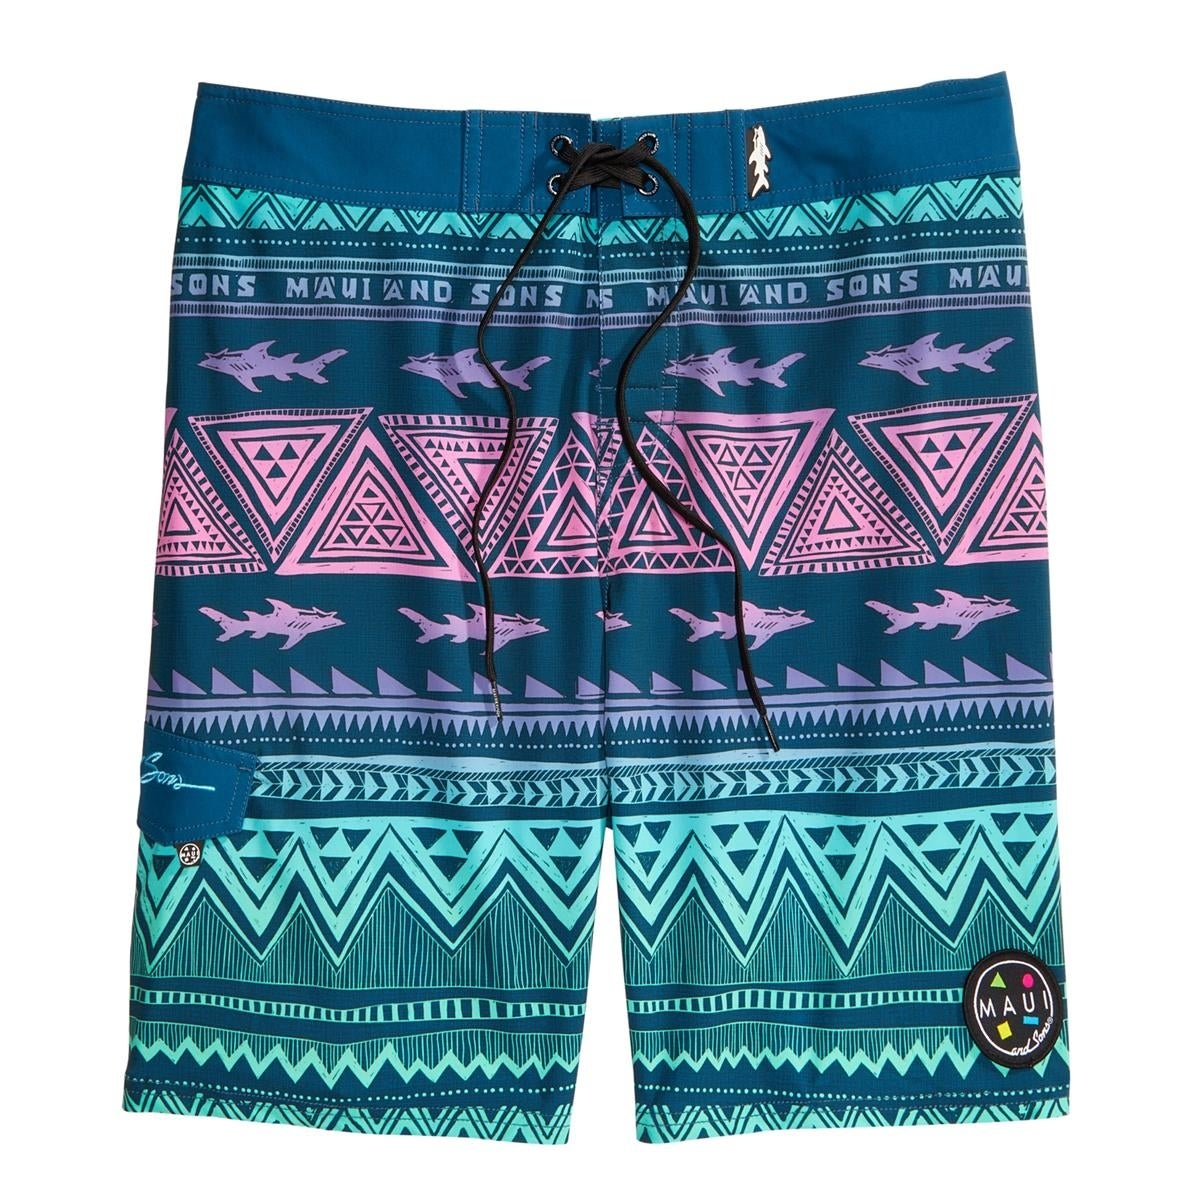 9cc89e83ce Shop Maui and Sons Mens Surfside Graphic Swimwear Swim Trunks - 34 - Free  Shipping On Orders Over $45 - Overstock - 26566332